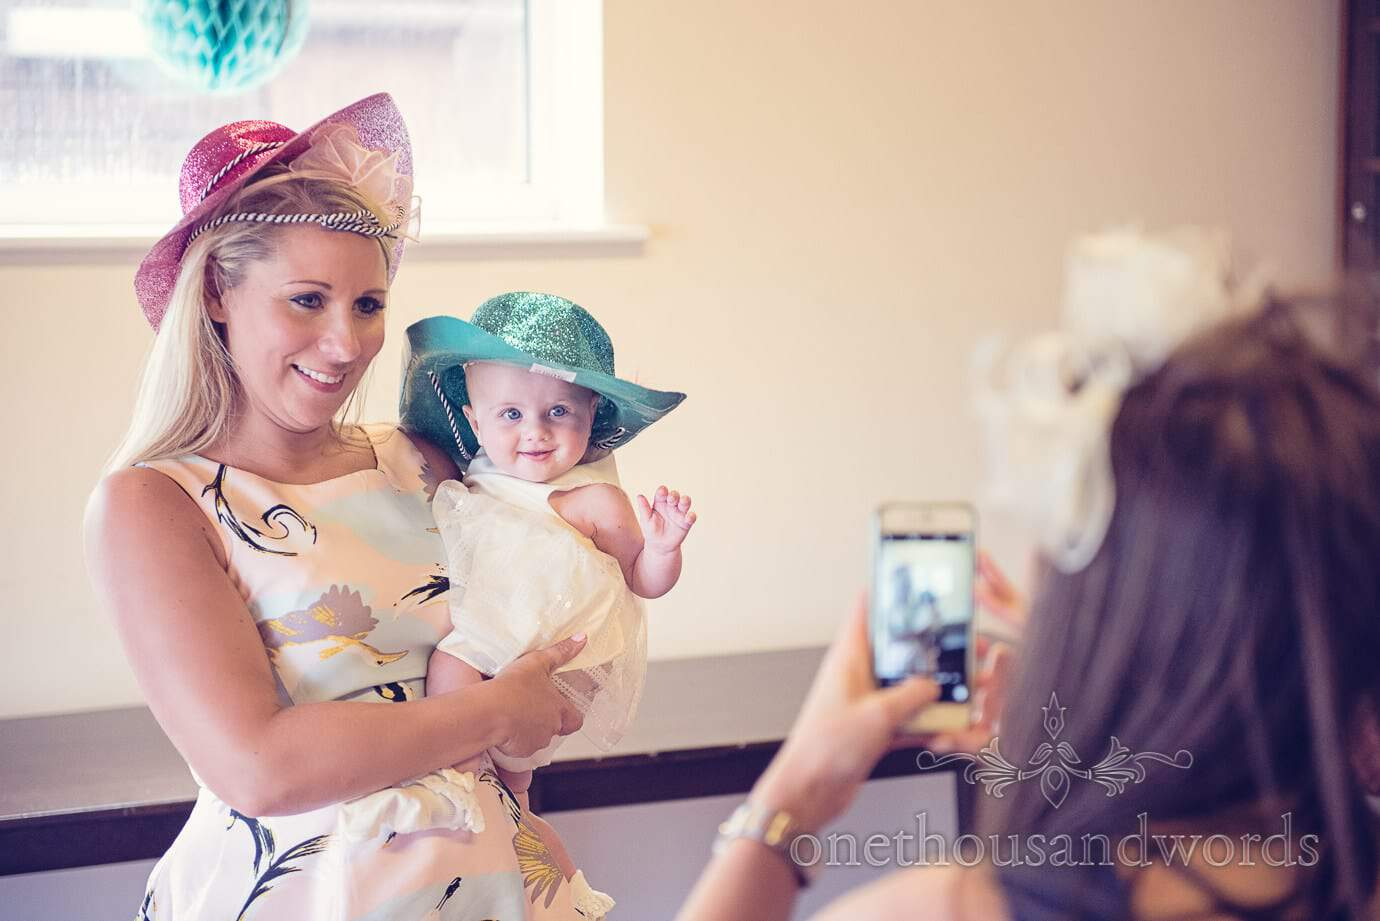 Wedding guest and baby wear colourful sparkly cowboy hats